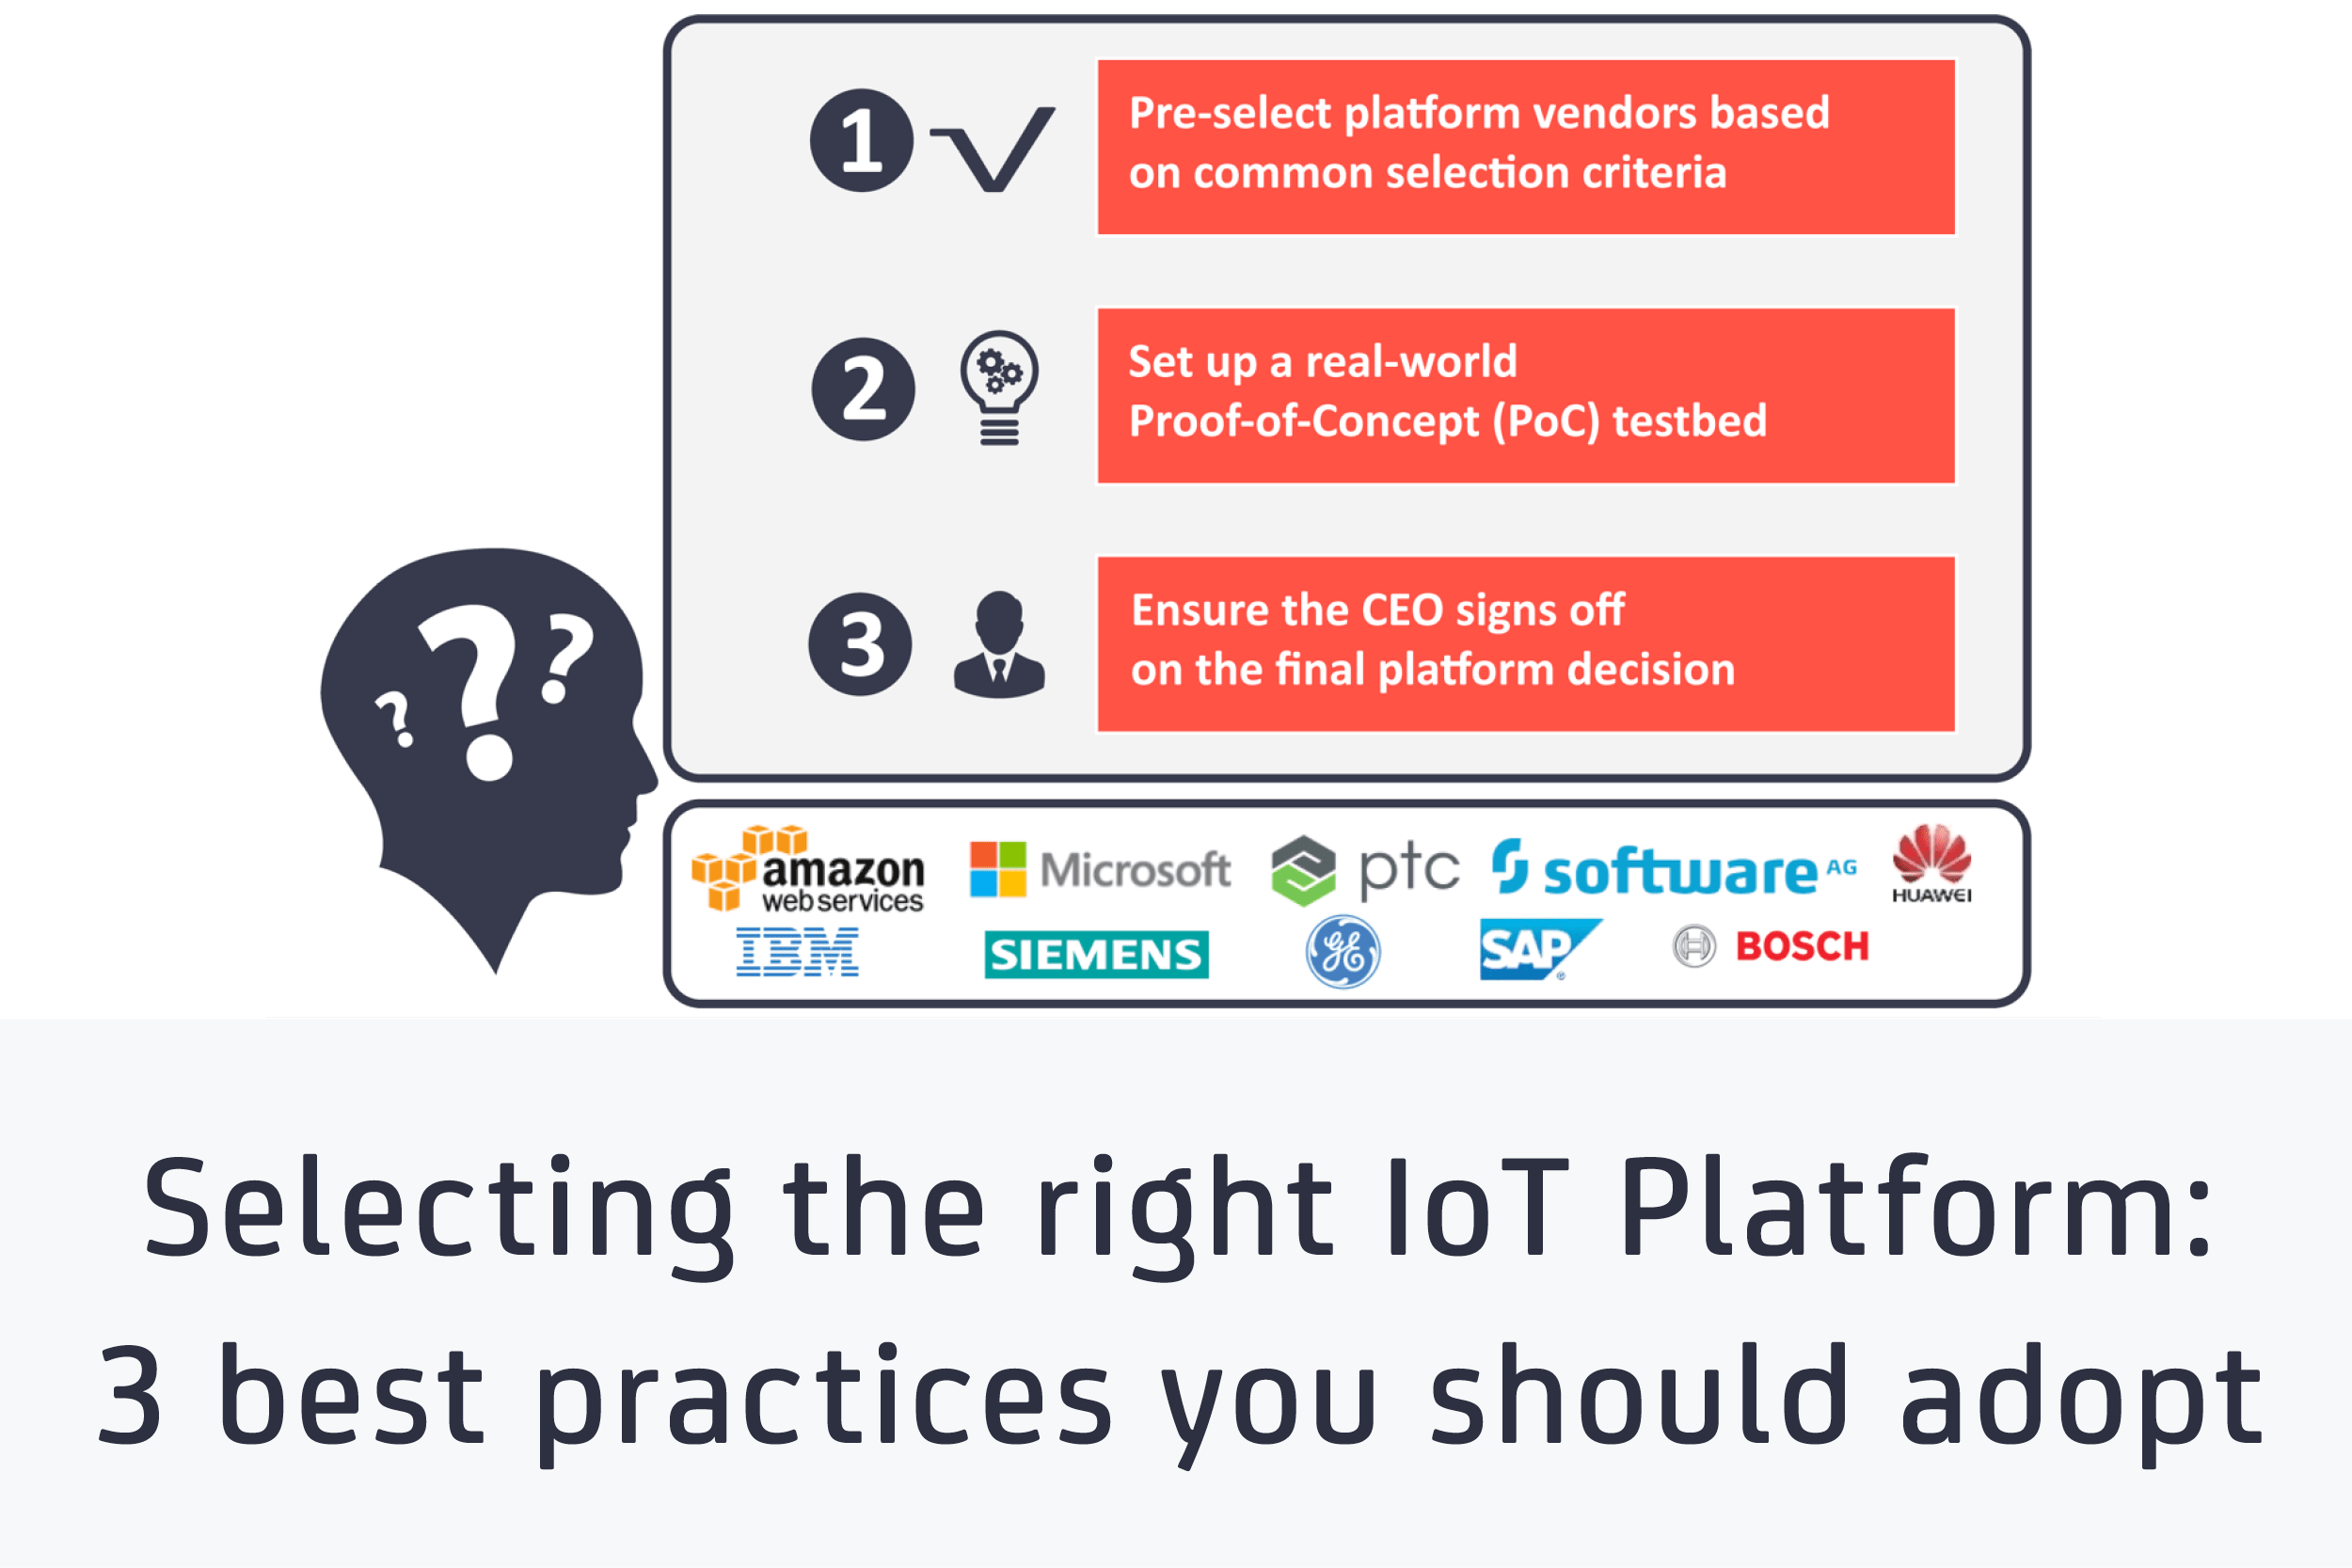 Selecting the right IoT Platform: 3 best practices you